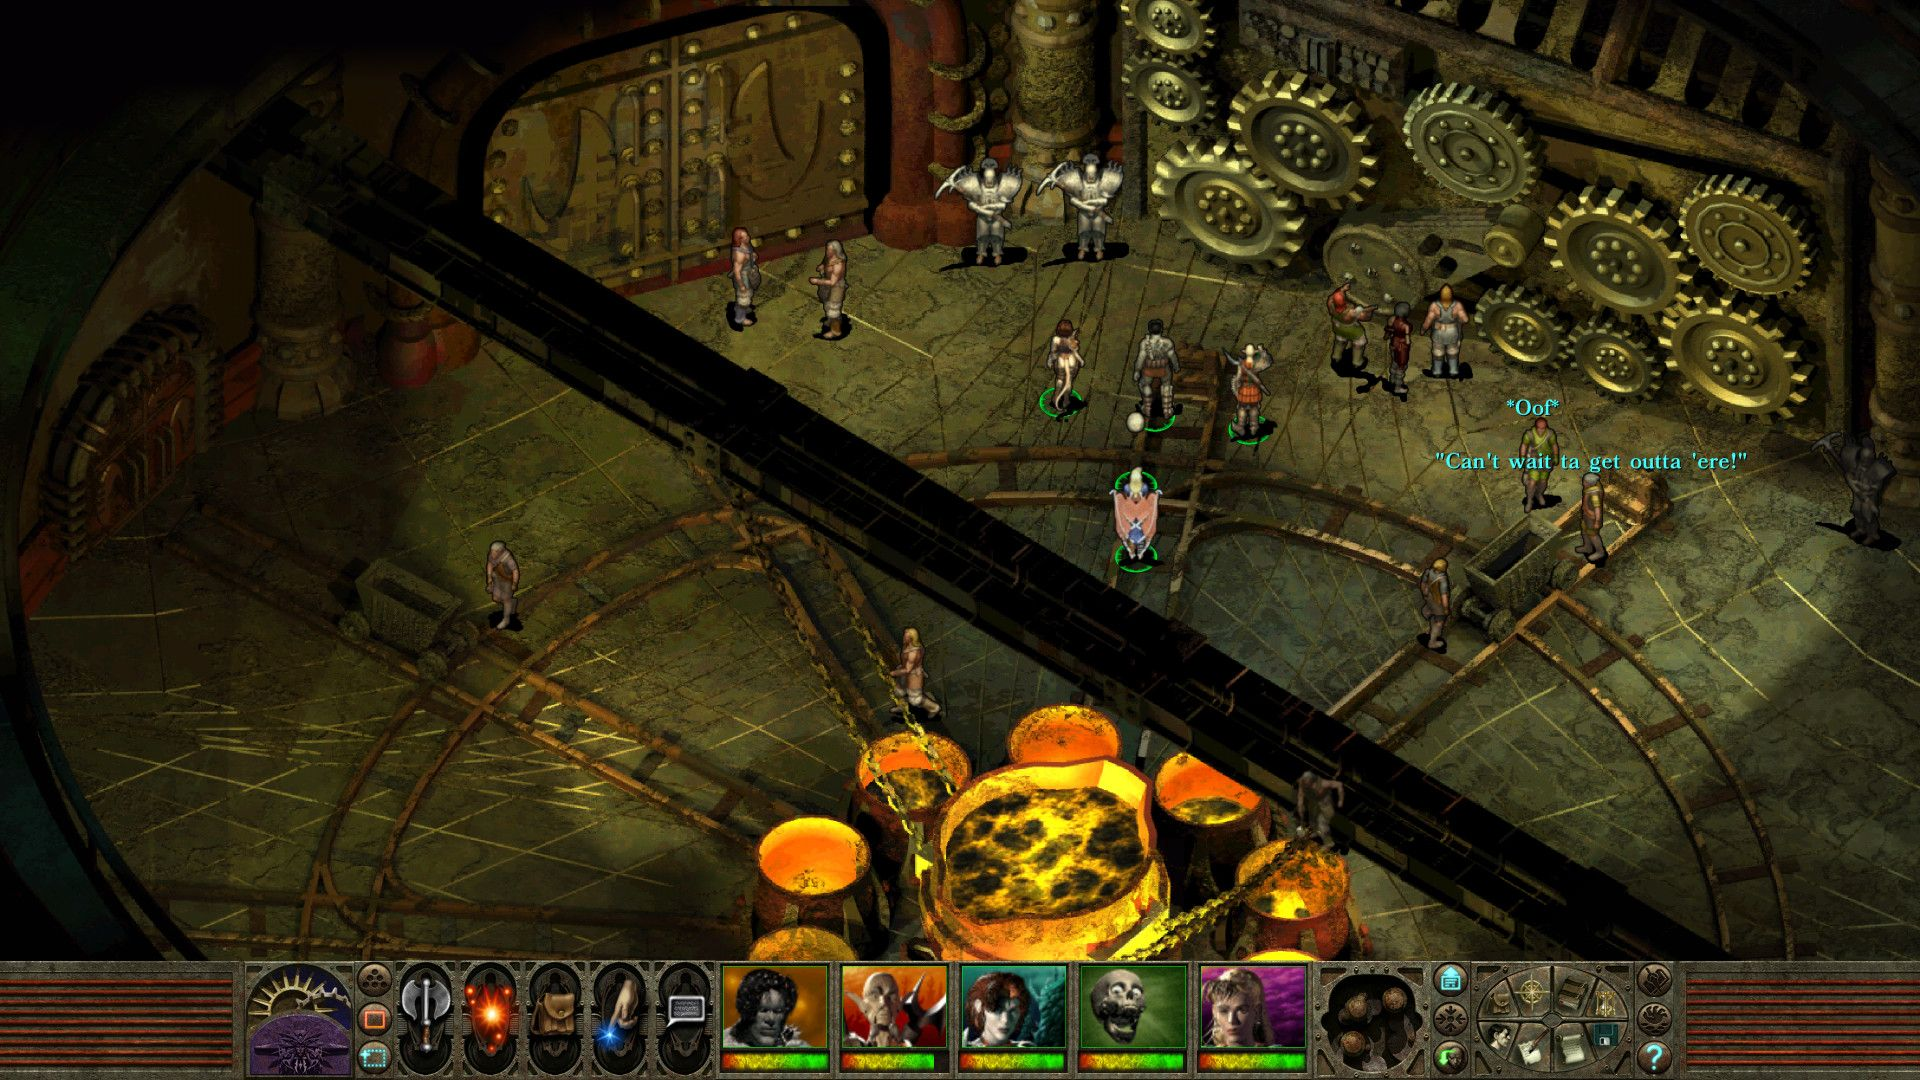 A screenshot of a large hall with lots of mechanical cogs on the wall in Planescape: Torment.